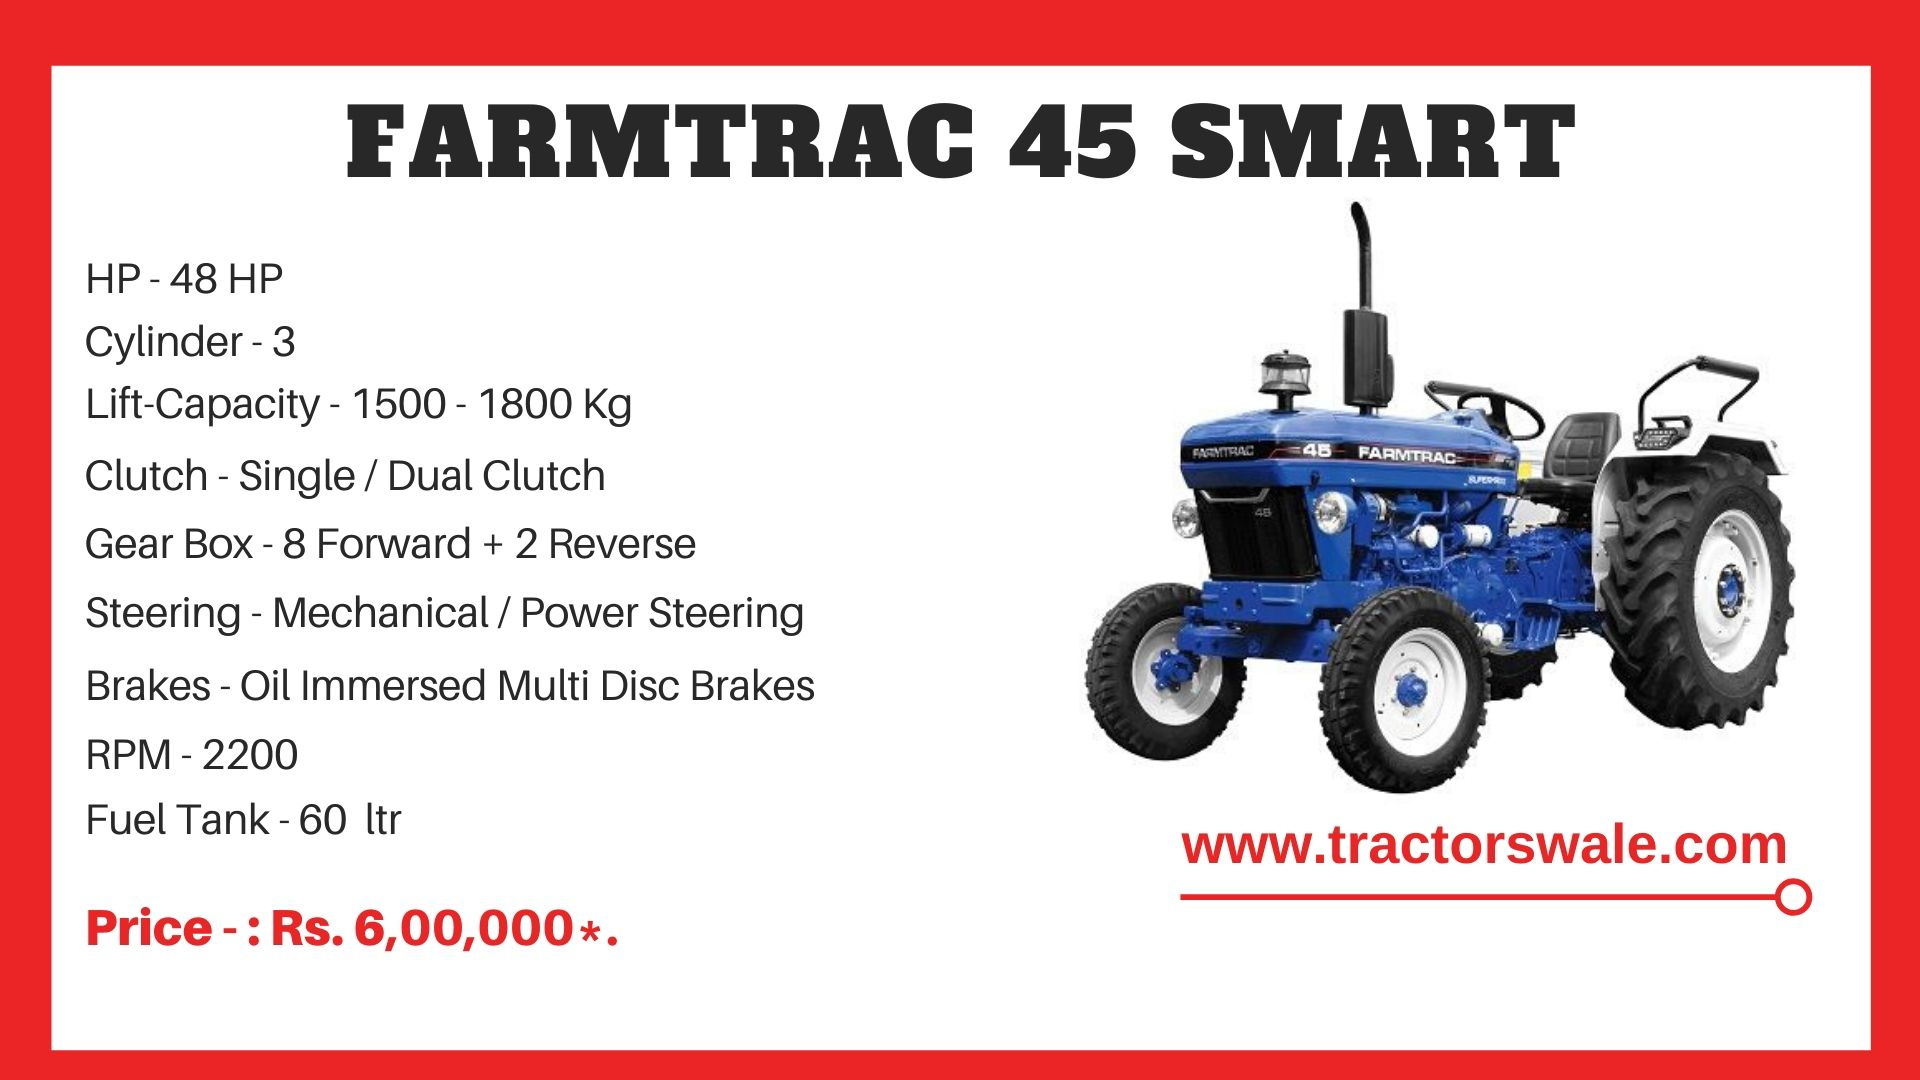 Farmtrac 45 Smart tractor price